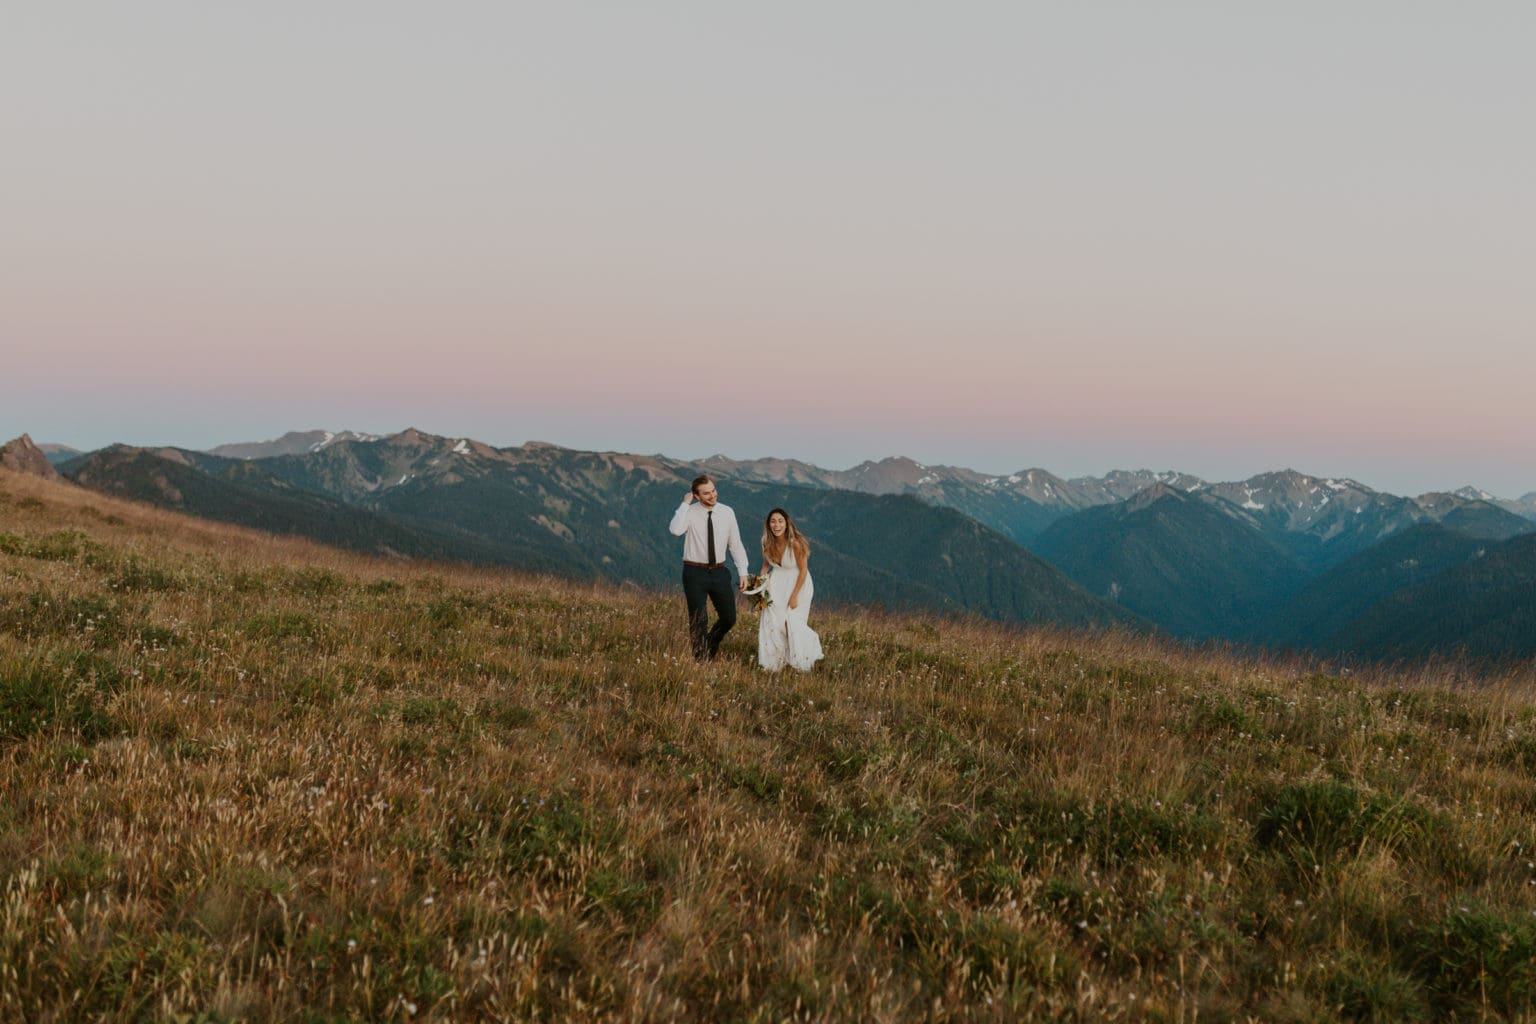 A bride and groom playing in the grass on their elopement day, taken by California elopement photographer, Brianna Parks.